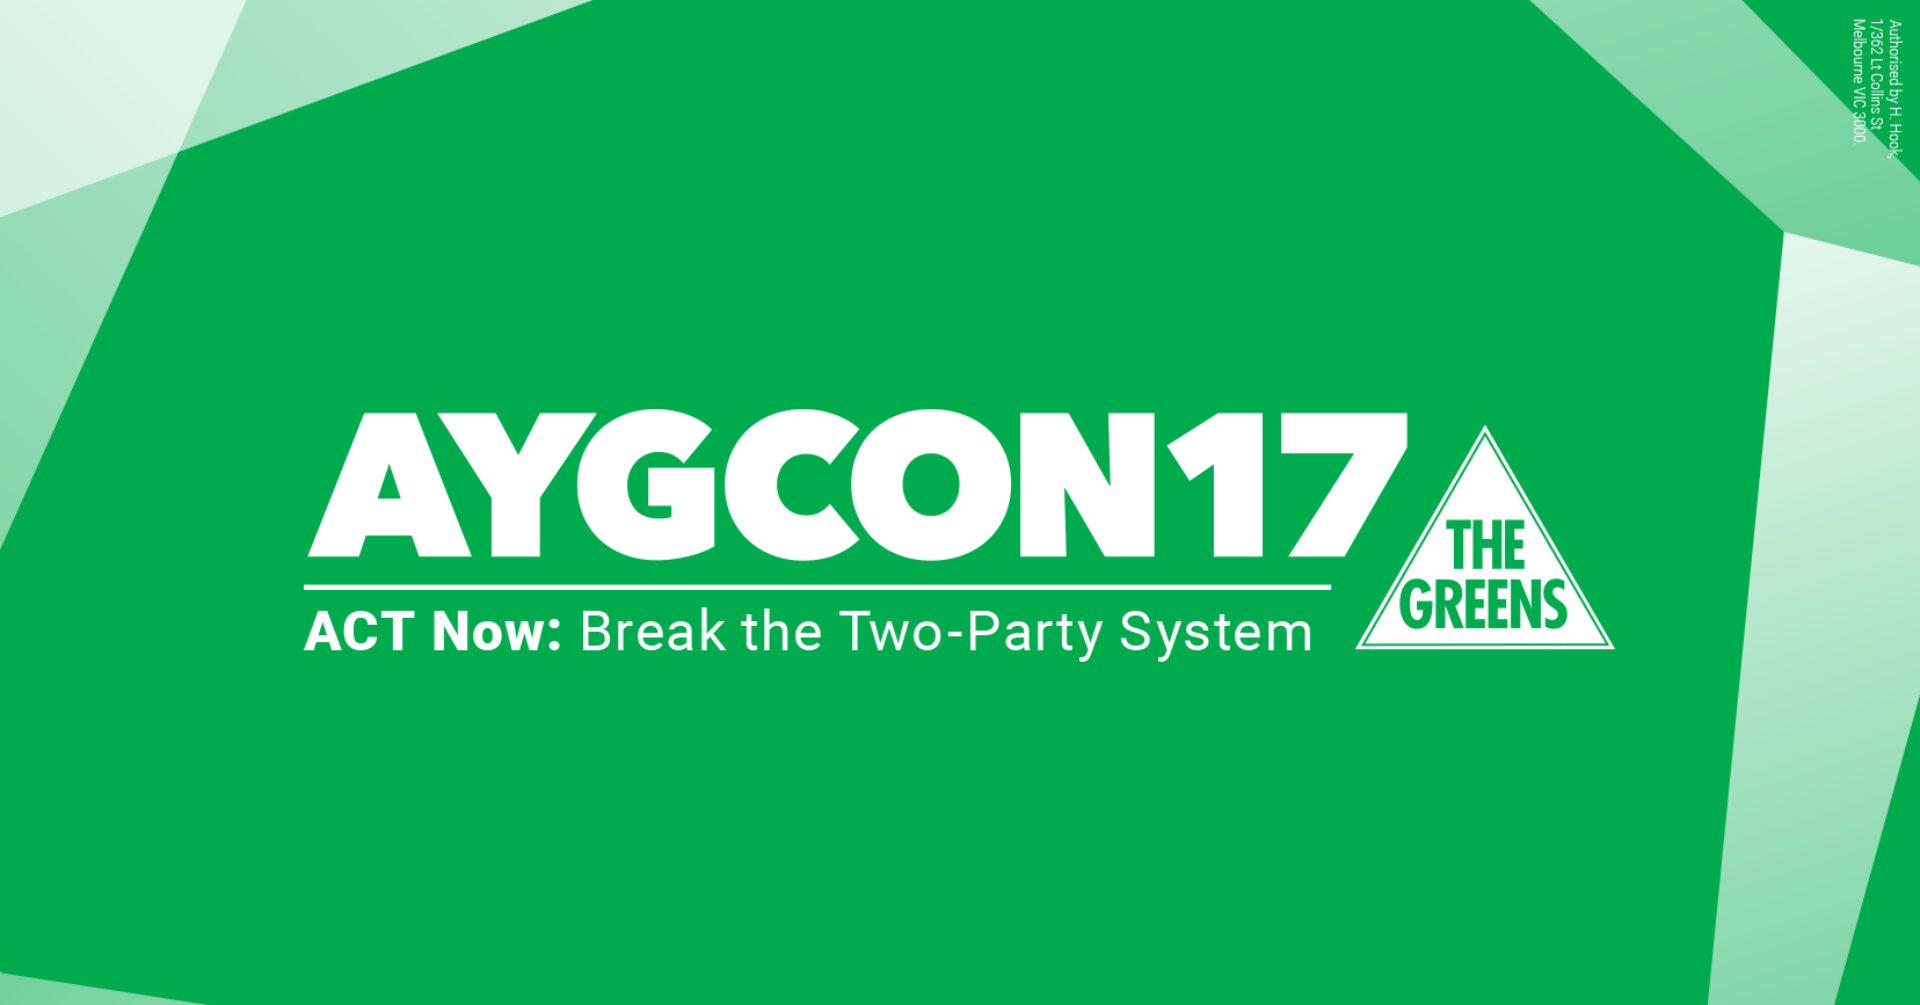 AYGCon17 - ACT Now: Break The Two-Party System